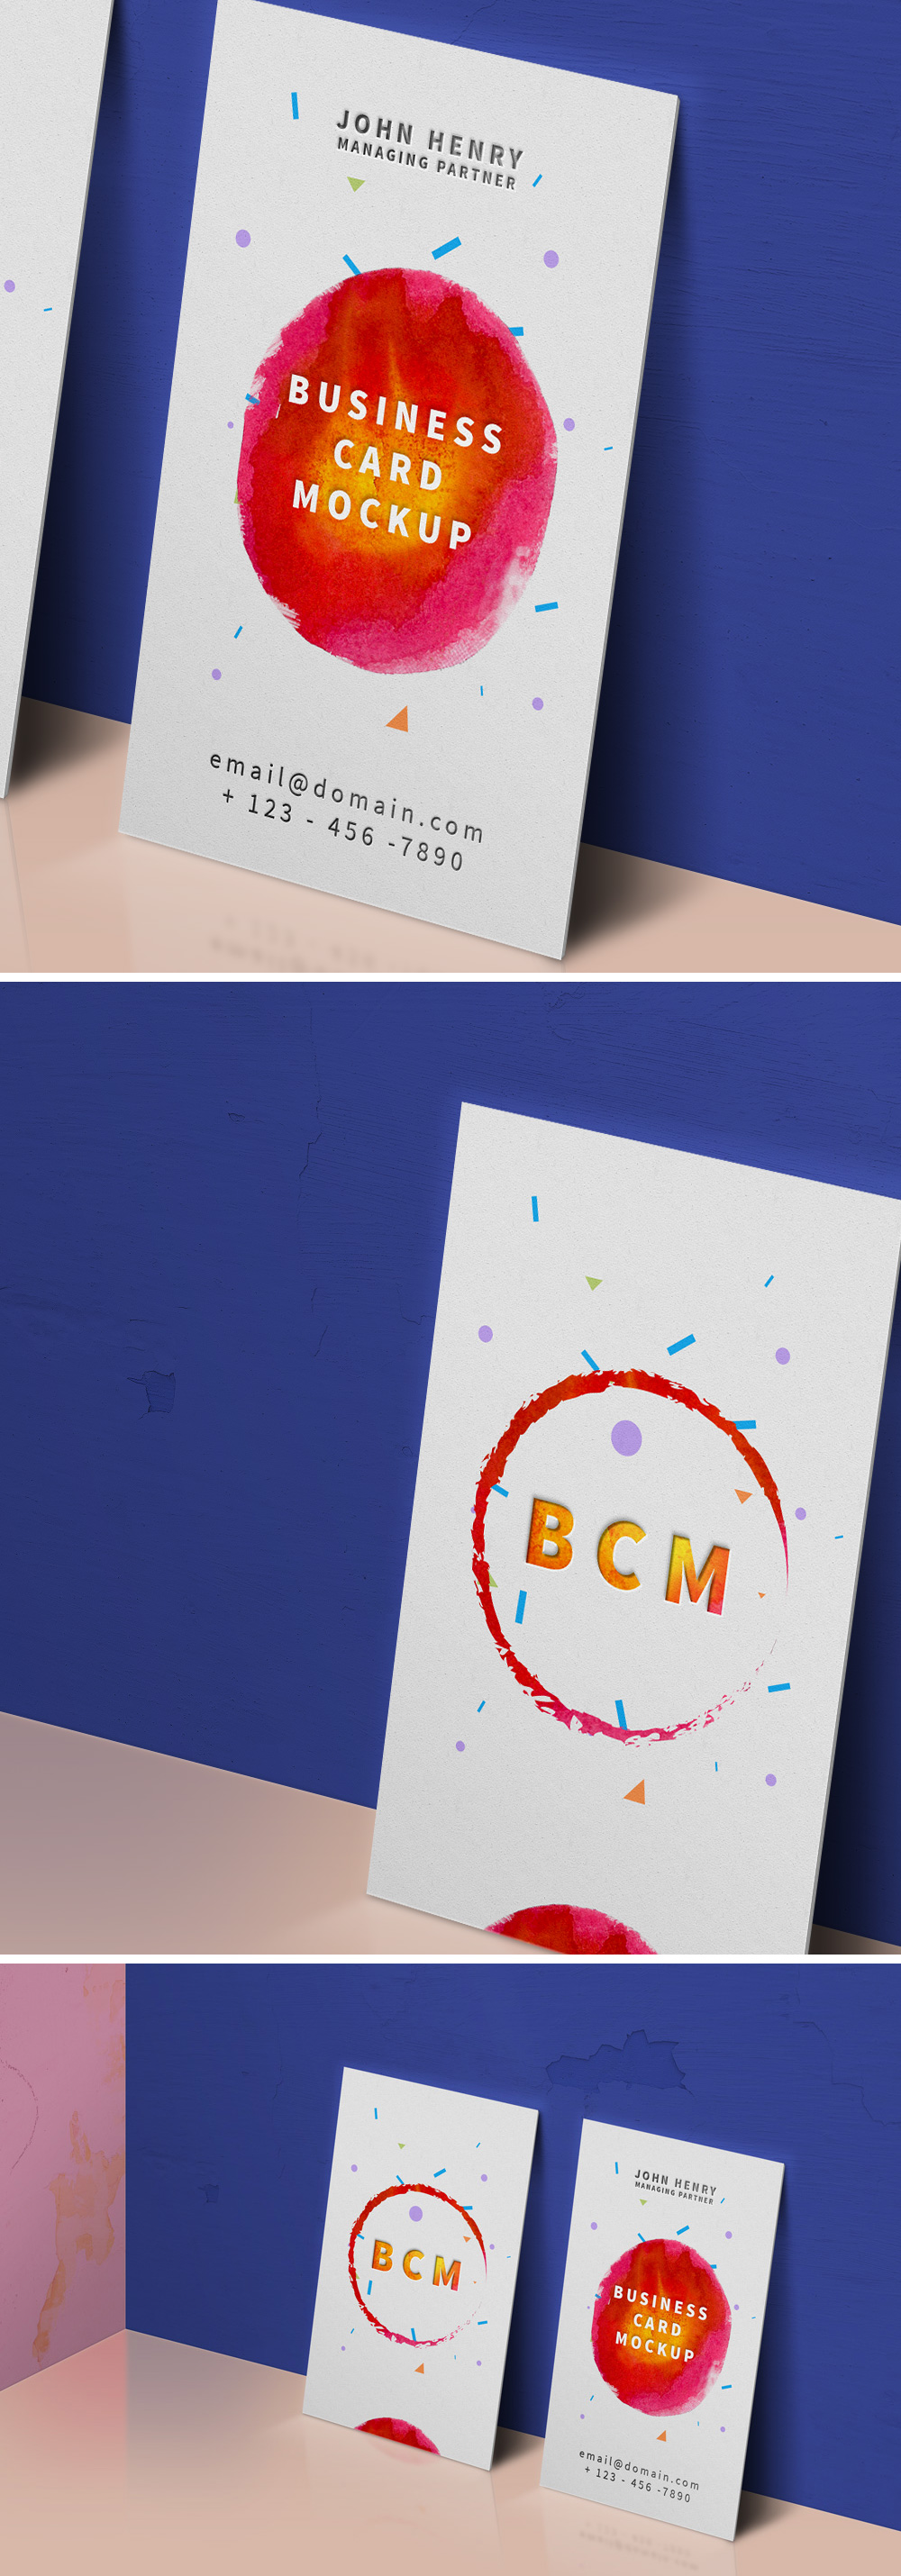 standing-business-cards-psd